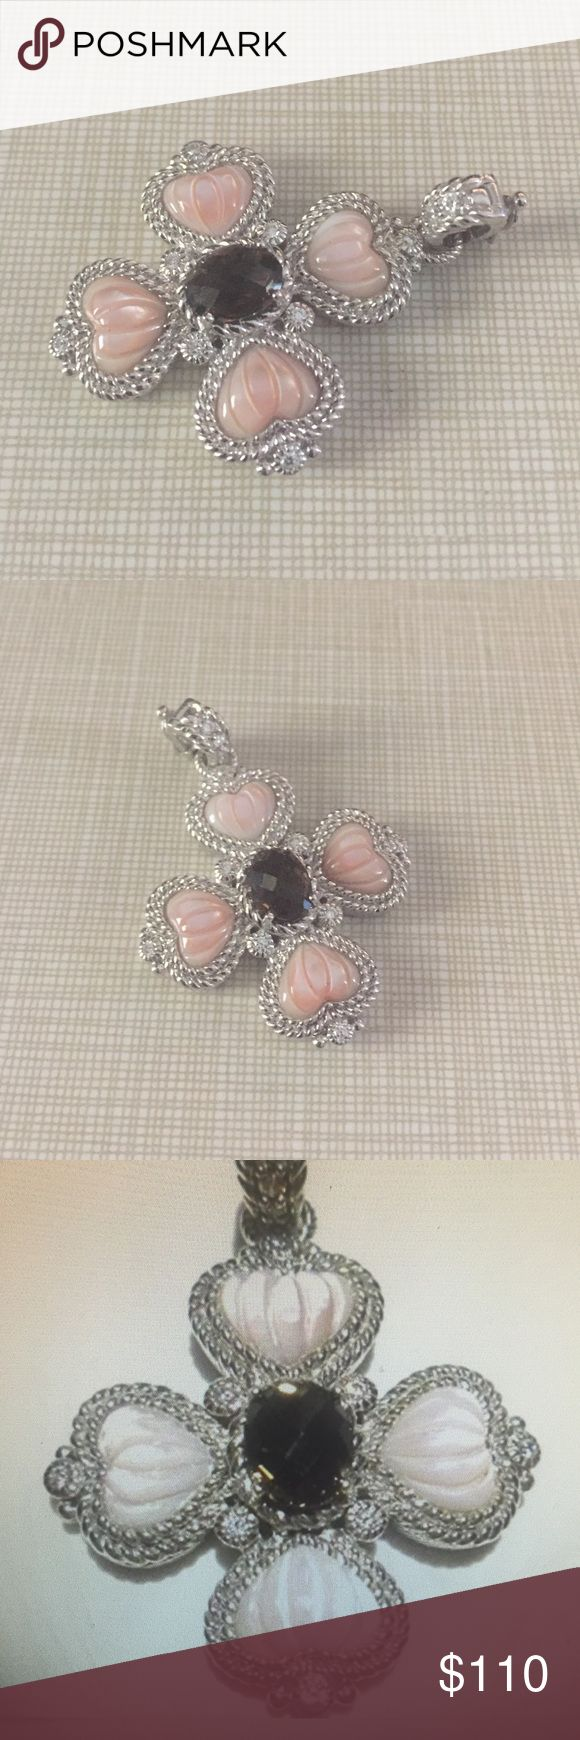 "2"" Judith Ripka silver925 pink mop smoky pendant This stunning enhancer pendant is from famous designer Judith Ripka  pink mother of pearl smoky Quartz with stamped 925 also her name is stamped simply gorgeous Judith ripka Jewelry"